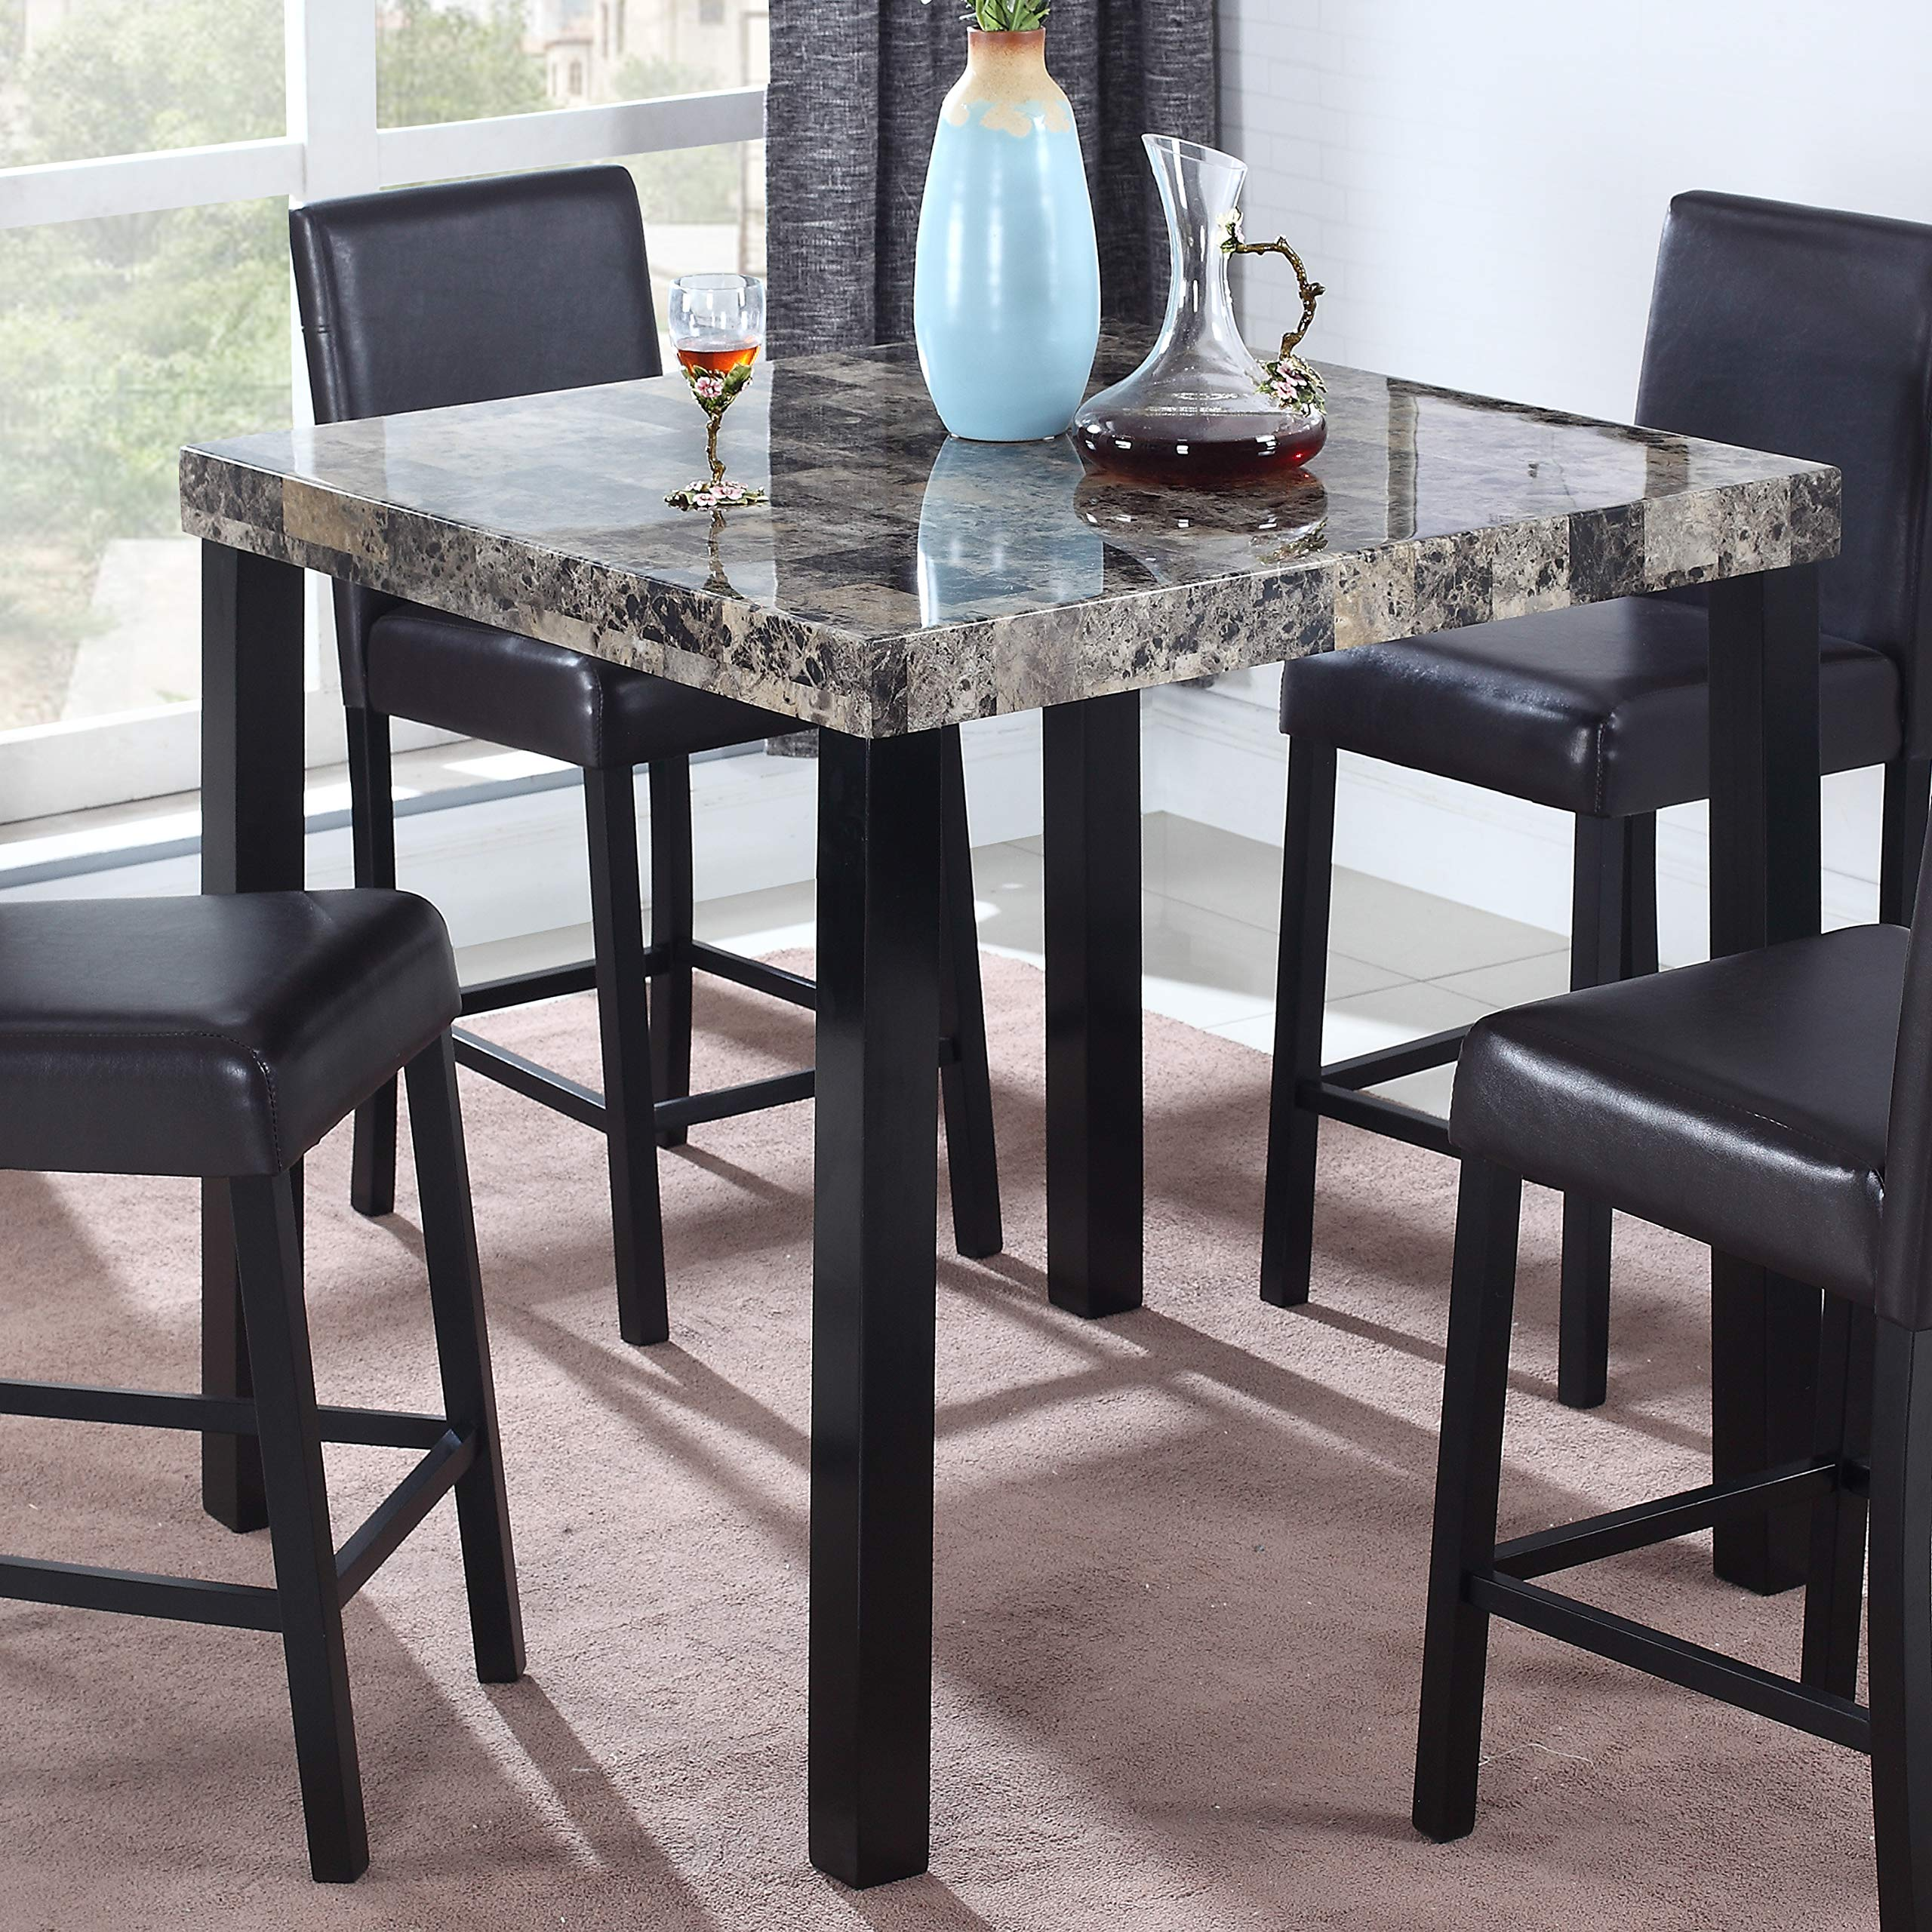 Best Master Furniture Britney Transitional Faux Marble Top Counter Table, Espresso Finish by Best Master Furniture